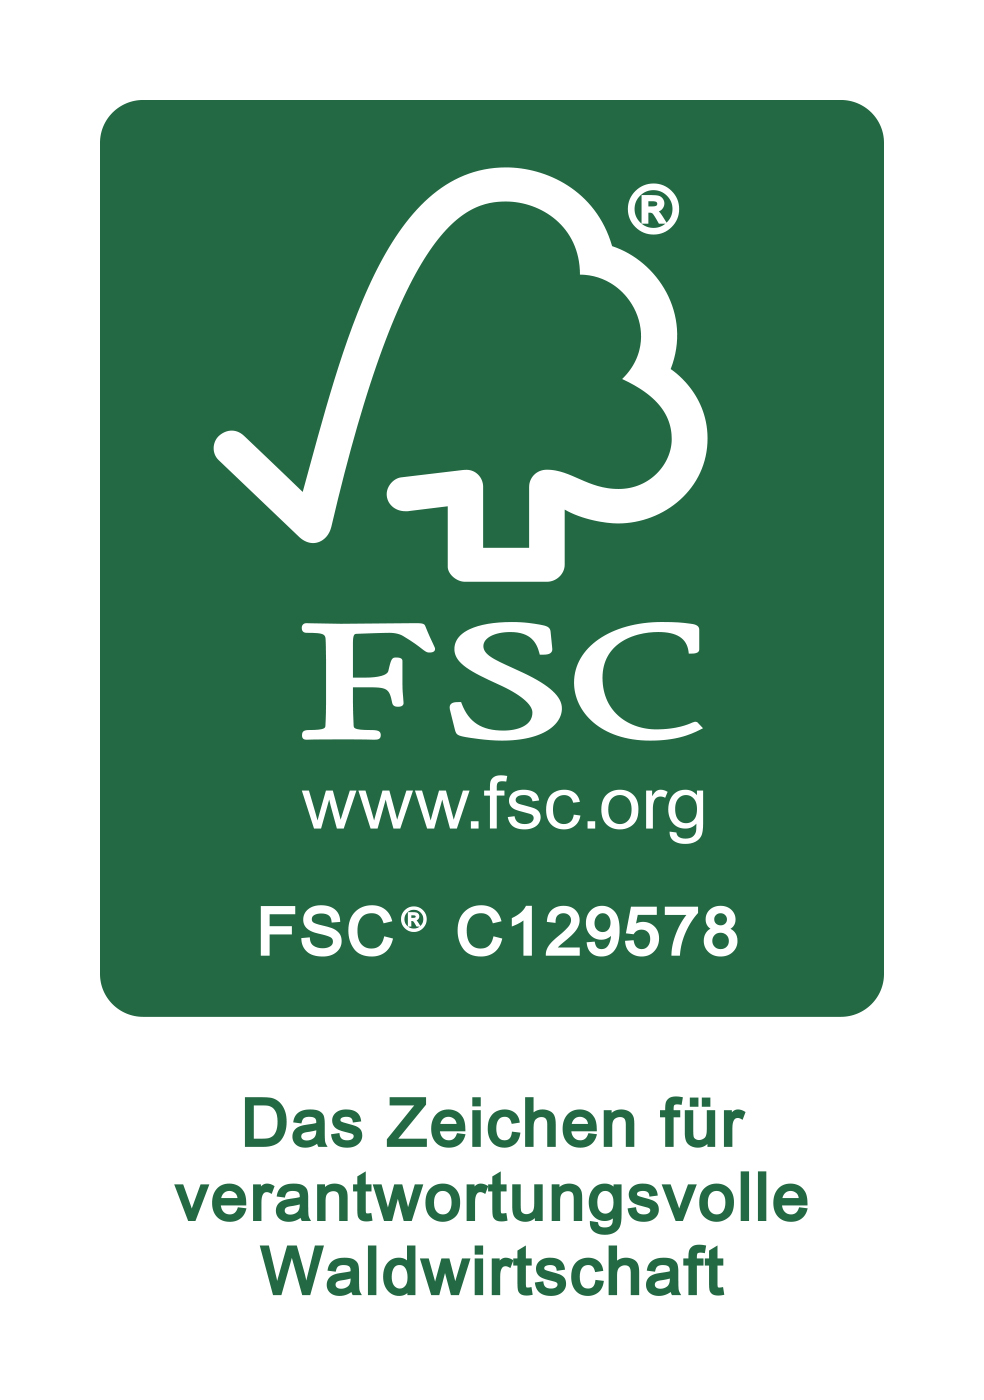 Forest-Stewardship-Council